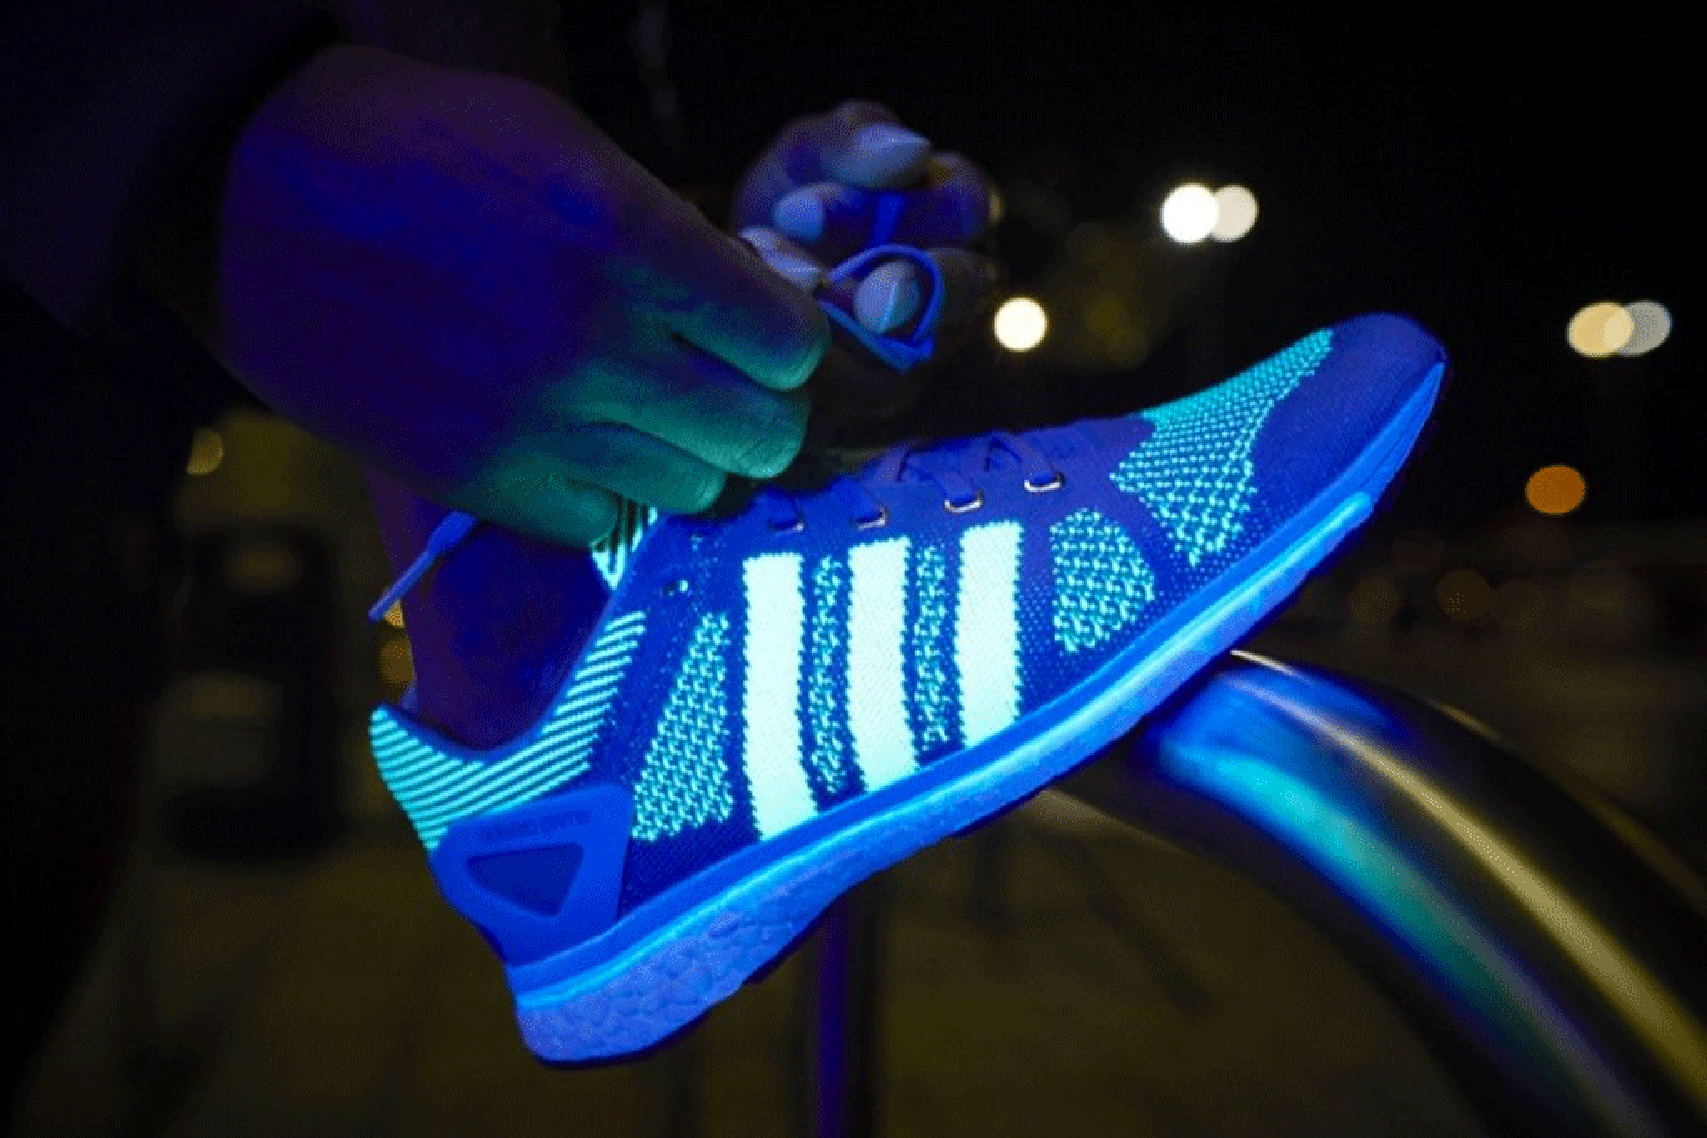 57eb2db2eaa002fa3bf14514_adidas-adizero-prime-glow-in-the-dark